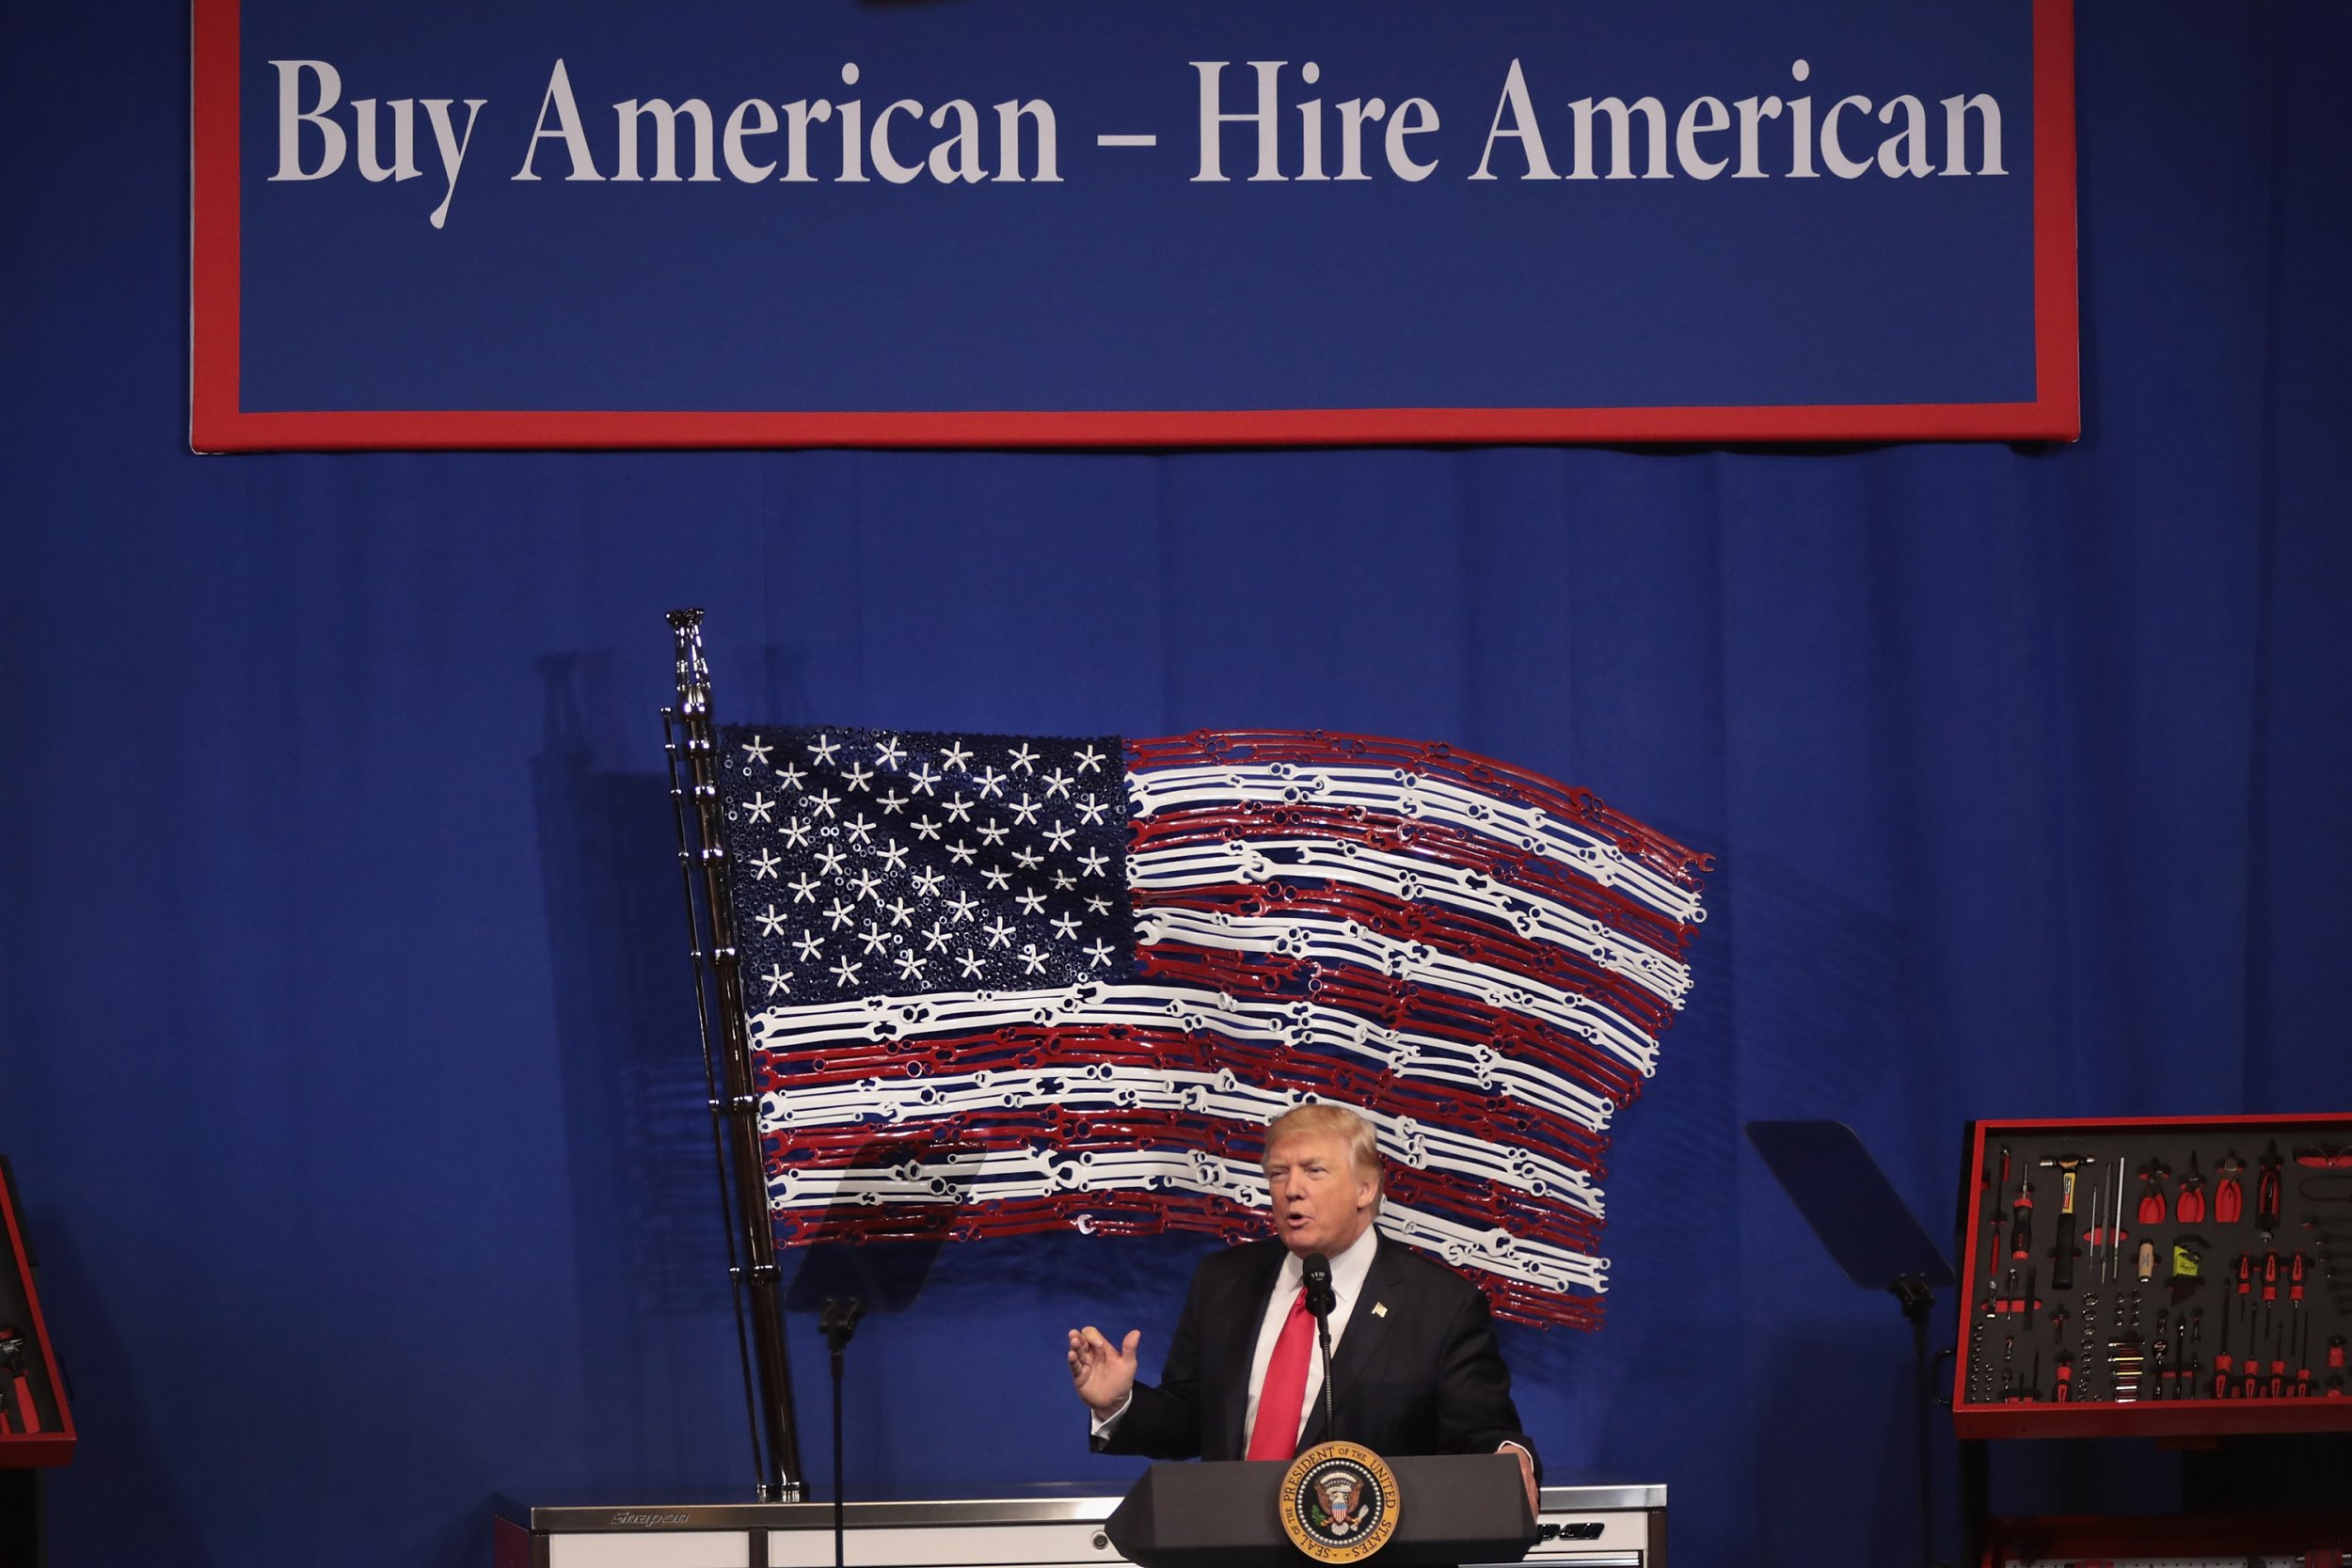 H-1B Visas Would Not Be Extended Under Trump's Latest Proposal